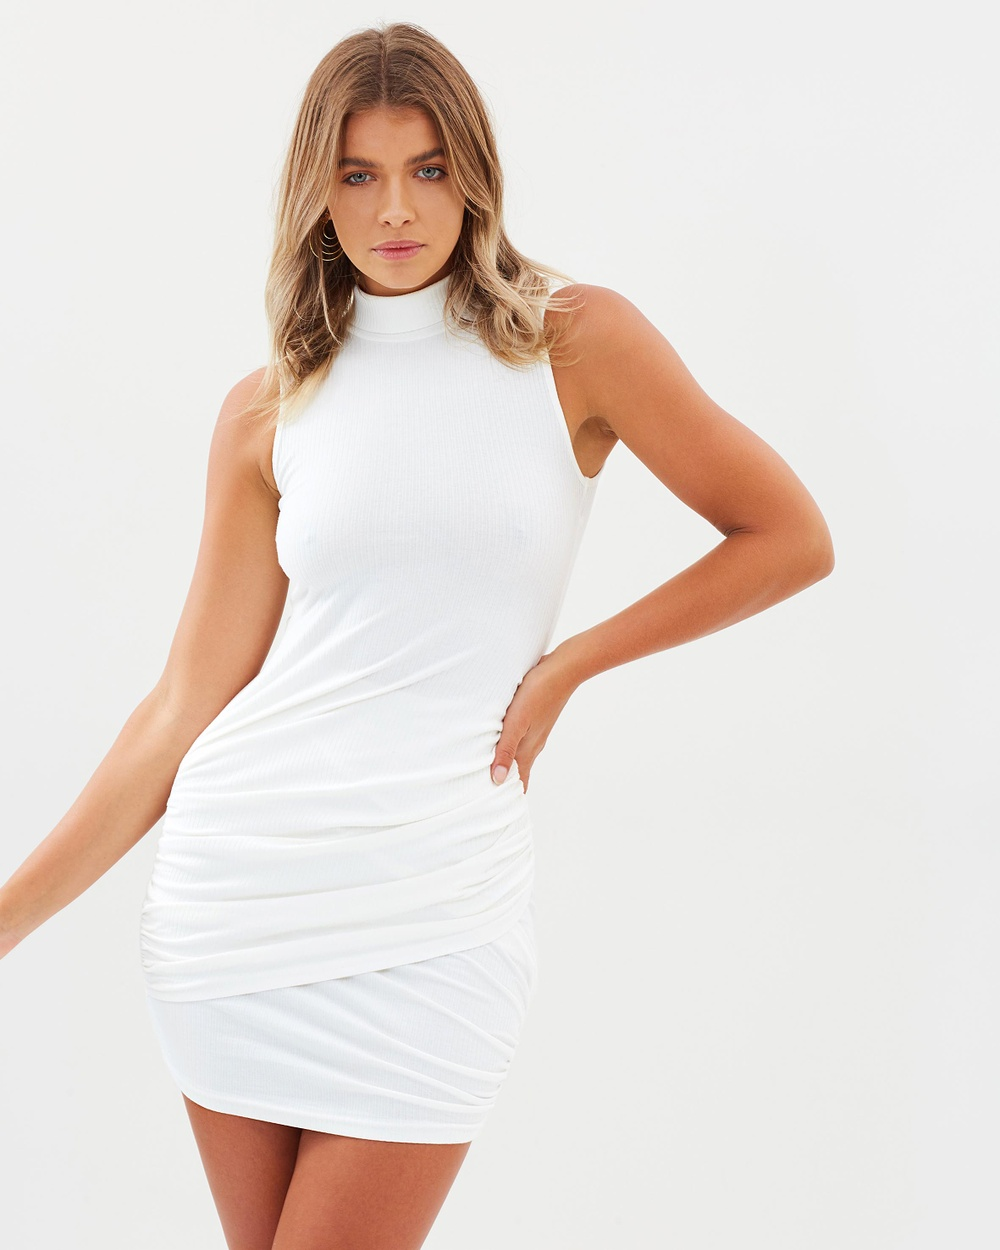 Lioness Flirtatious Love Dress Bodycon Dresses White Flirtatious Love Dress